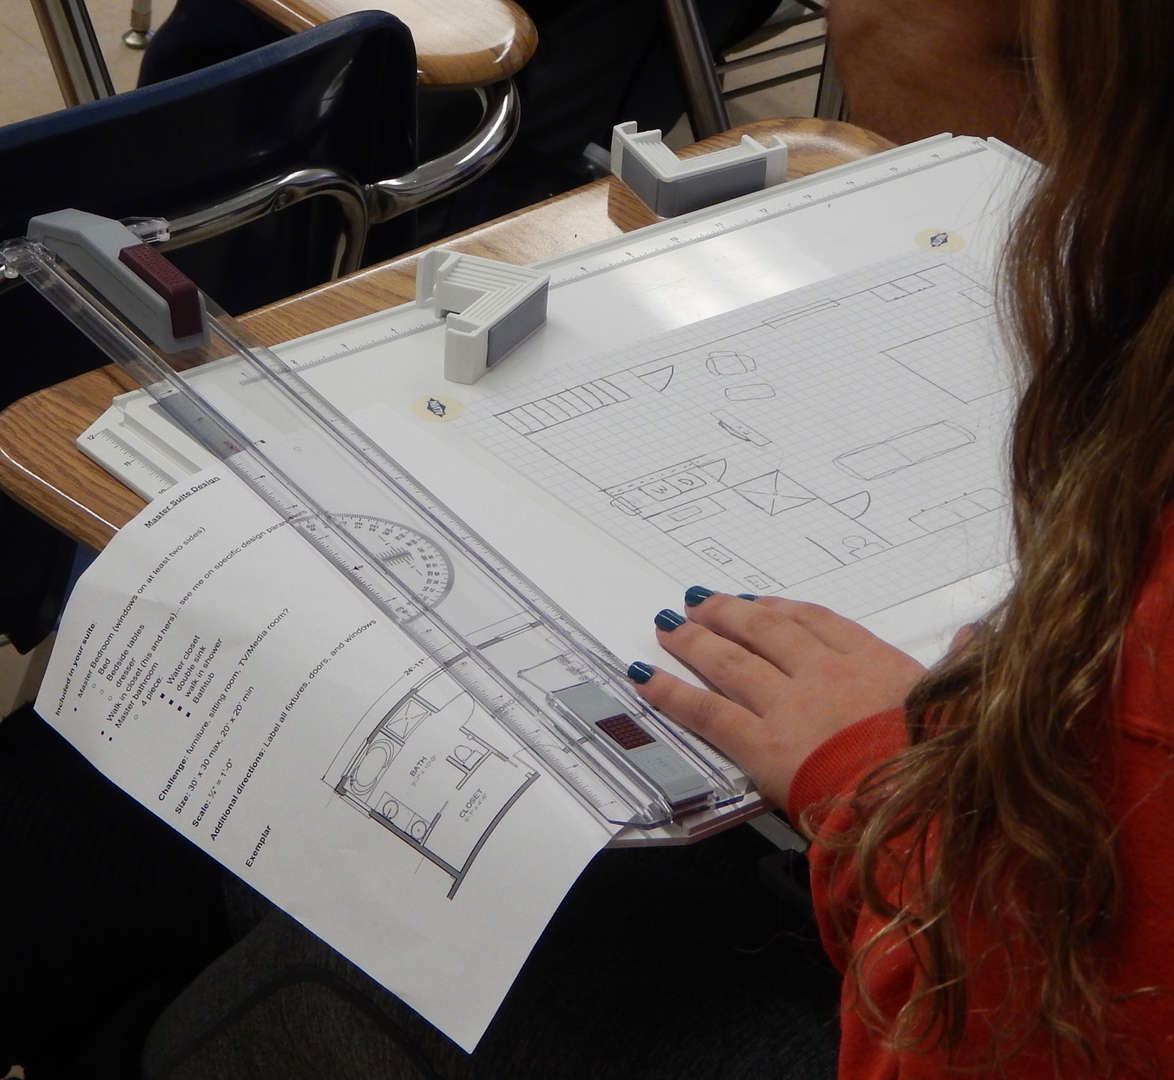 student drawing architecture plans